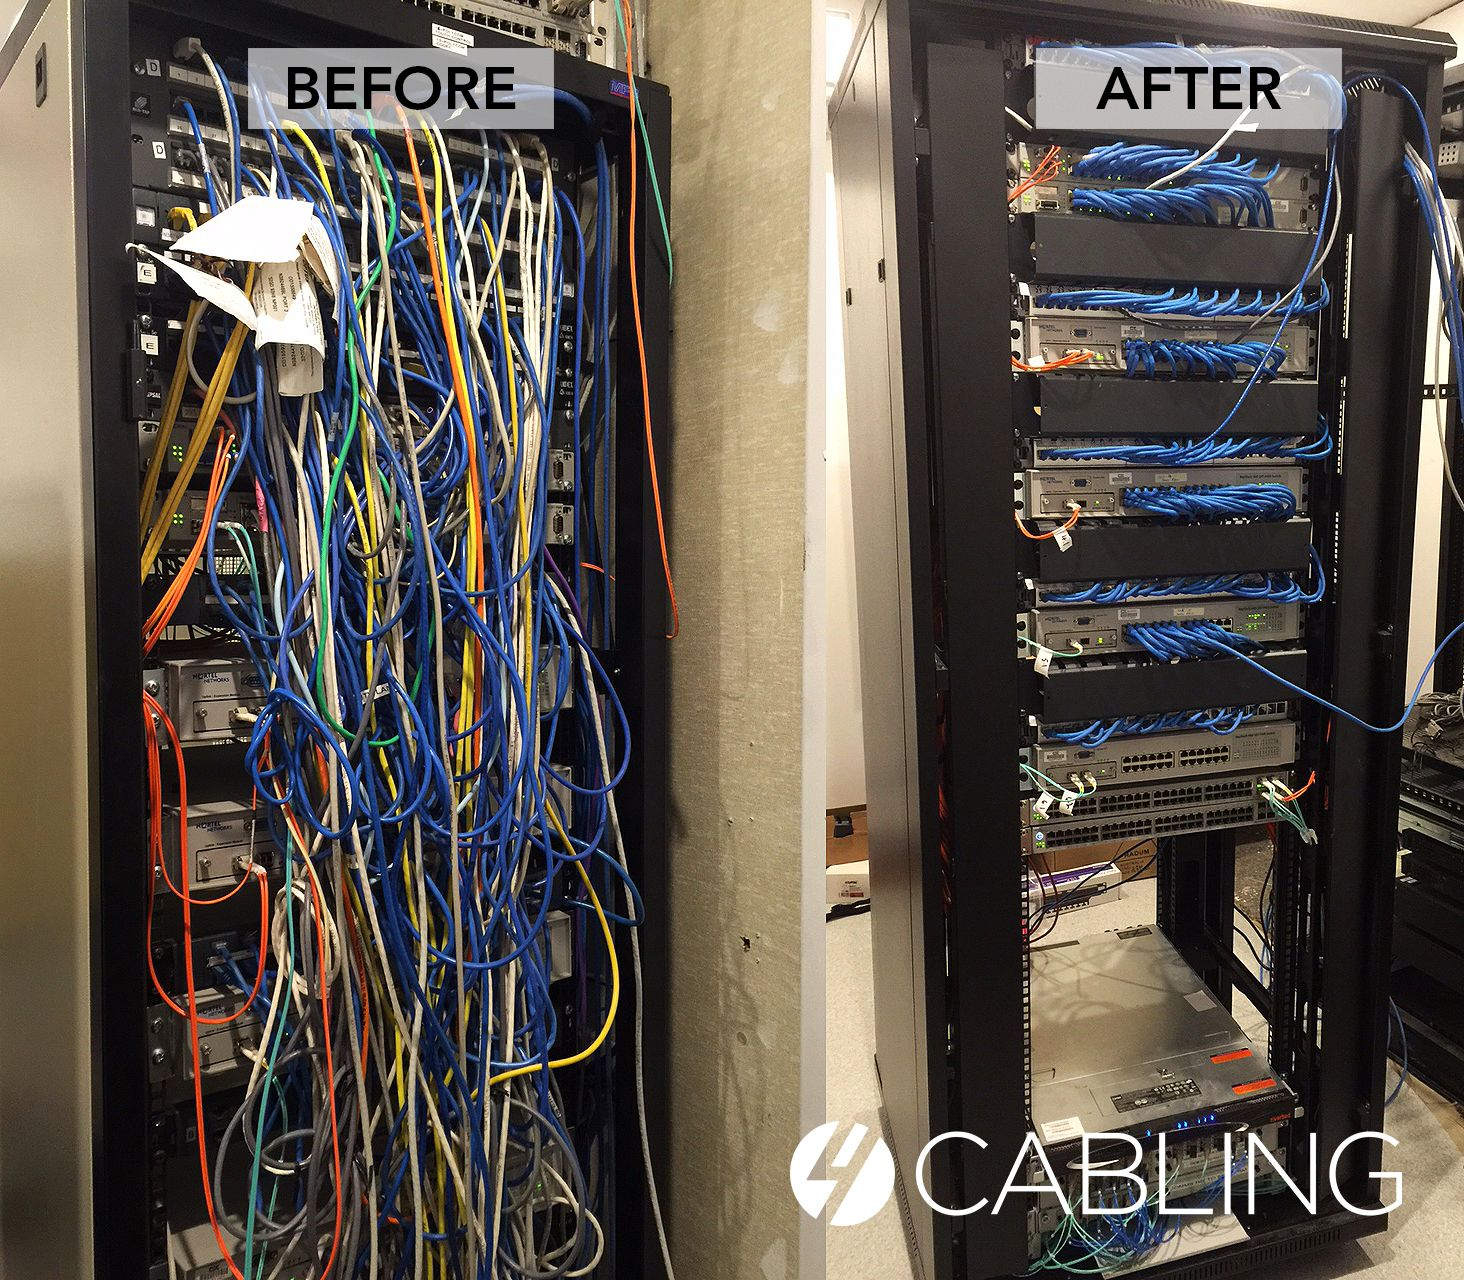 small resolution of special thanks to our customer marc f for sending through this fantastic before after cabling job he completed over the weekend wow is all we can say